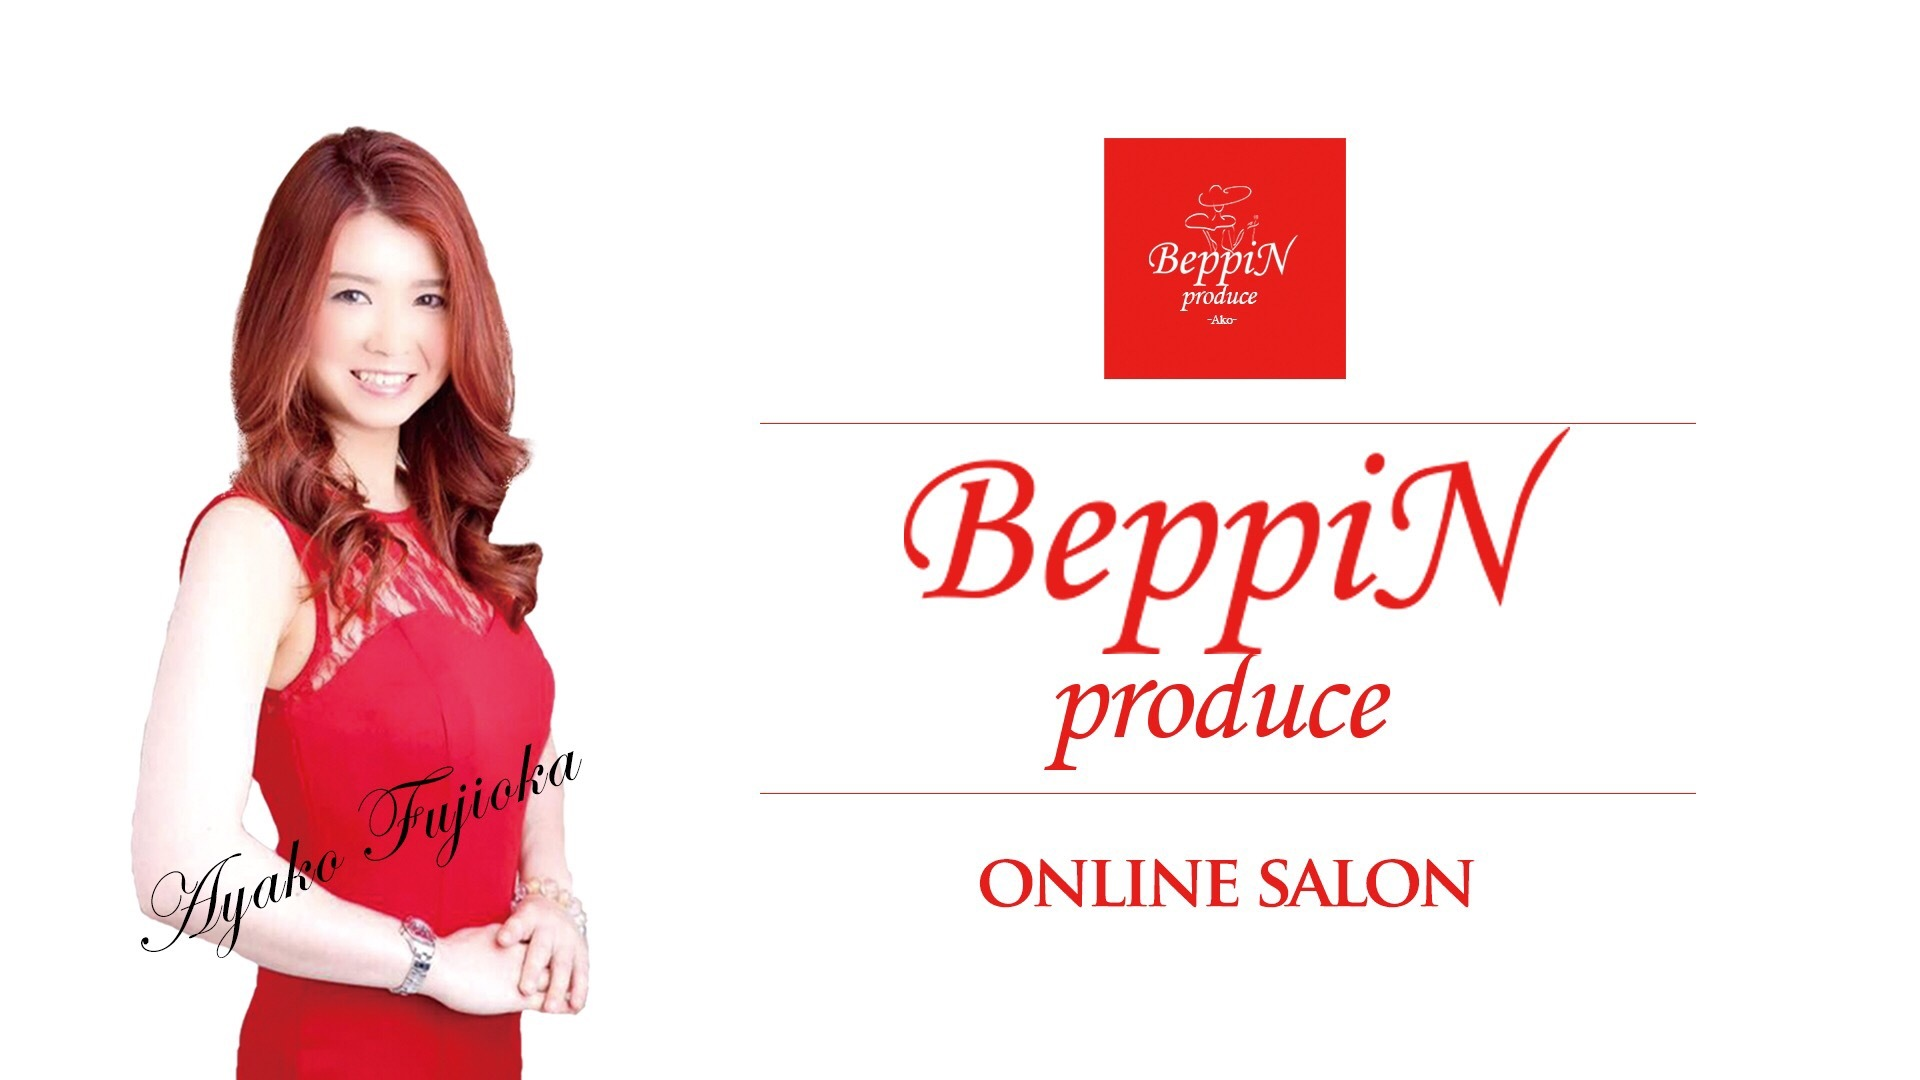 BeppiN produce Online